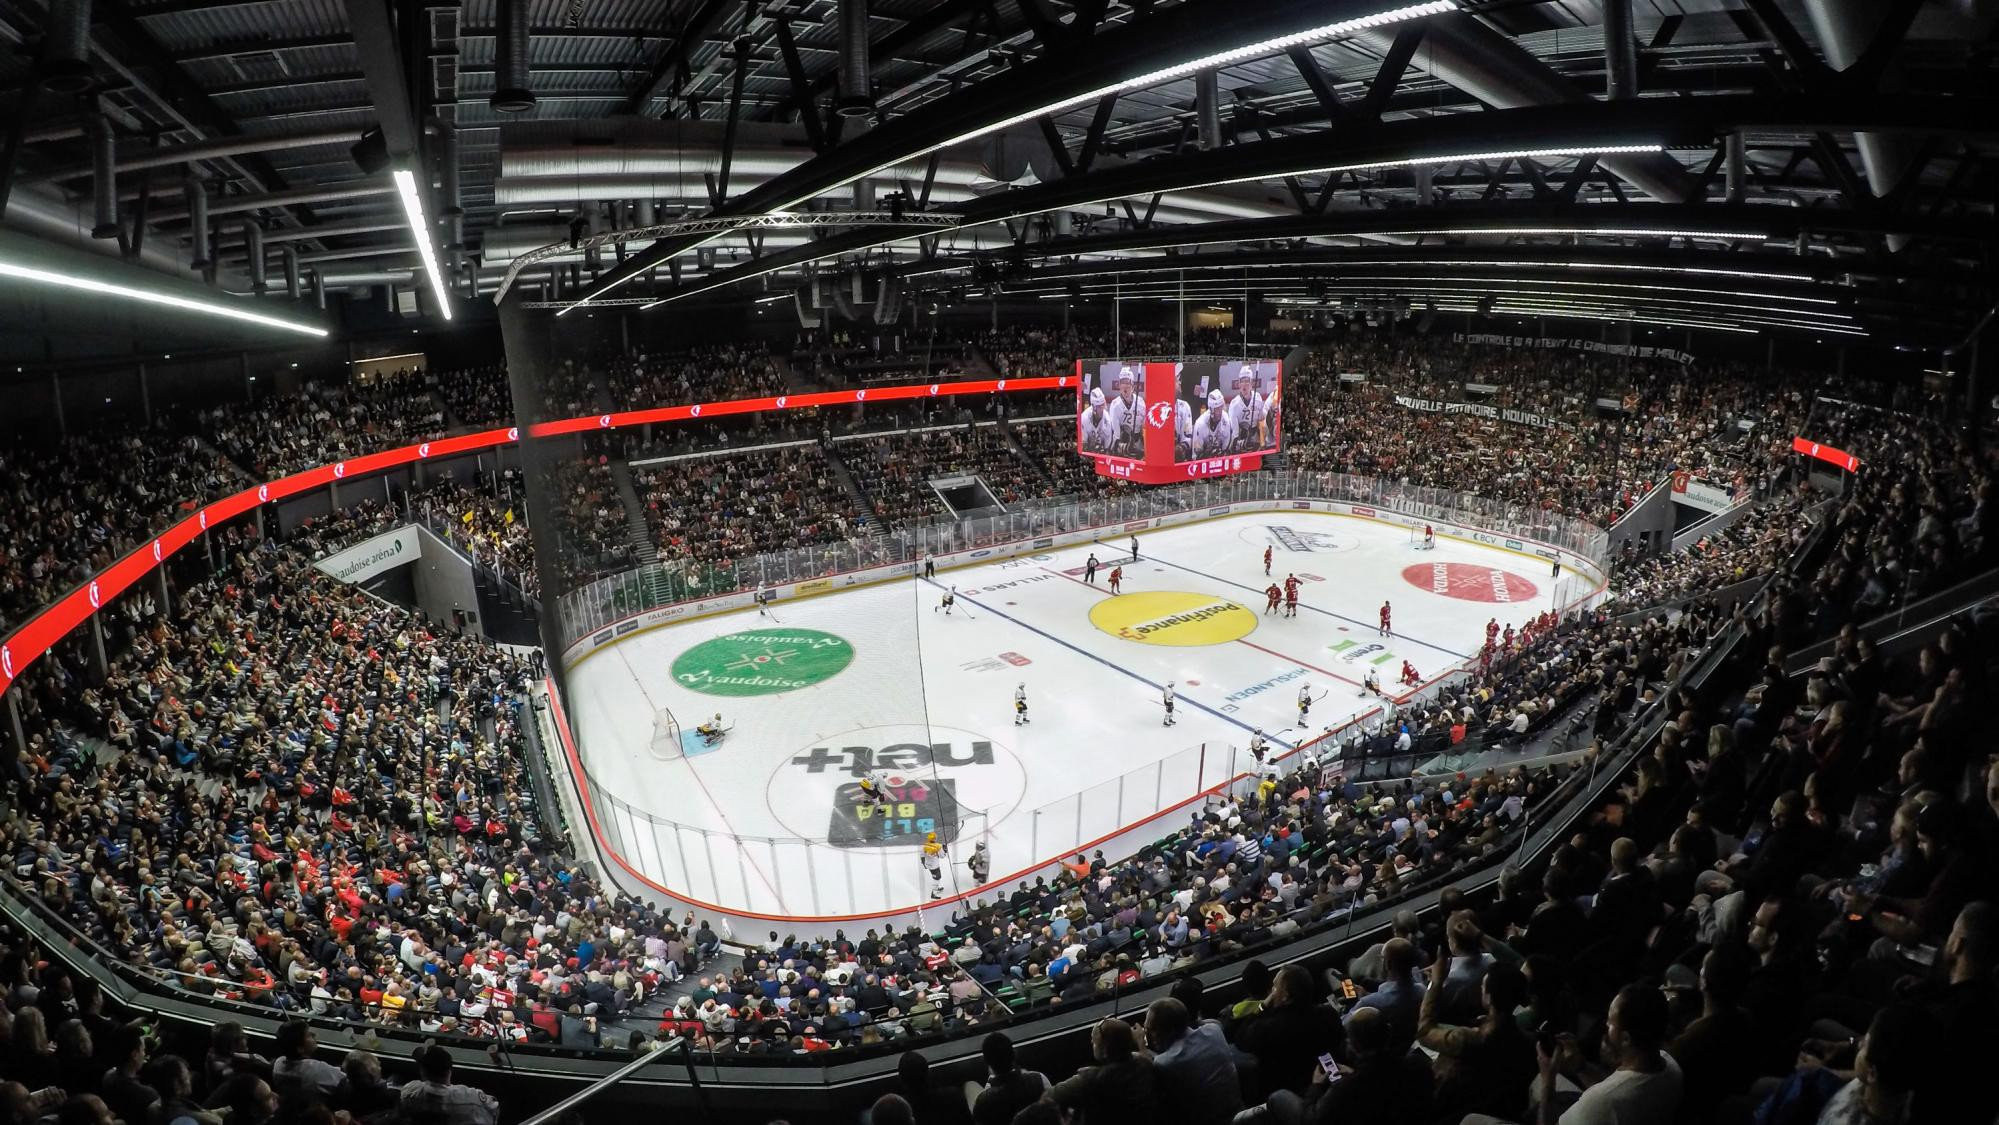 The Lausanne 2020 Winter Youth Olympic Games Opening Ceremony is taking place at Vaudoise Arena ©Lausanne Tourisme